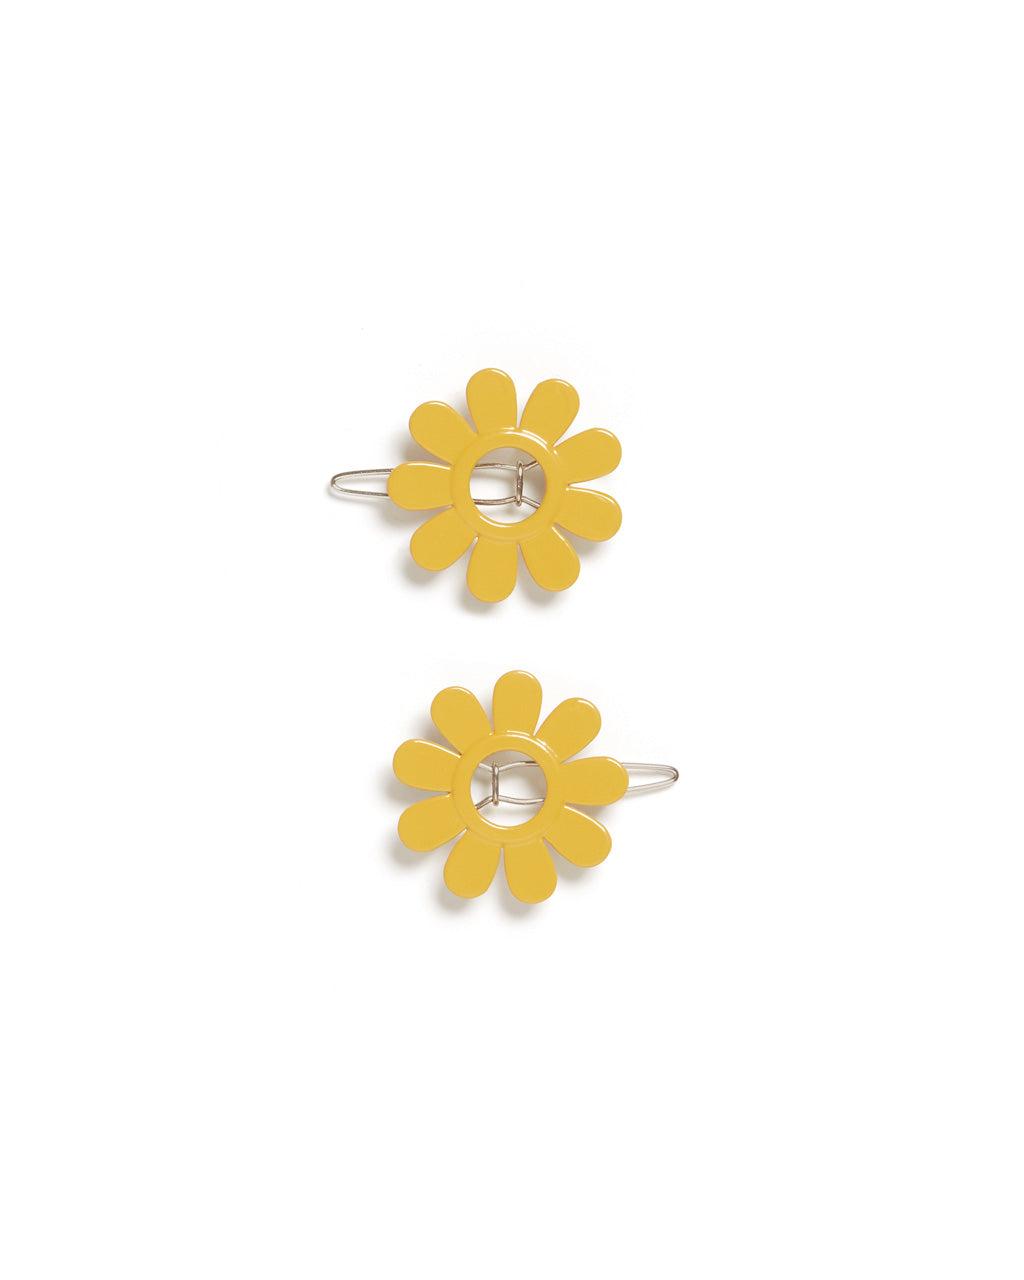 This enamel barrette comes in a bright yellow daisy design.